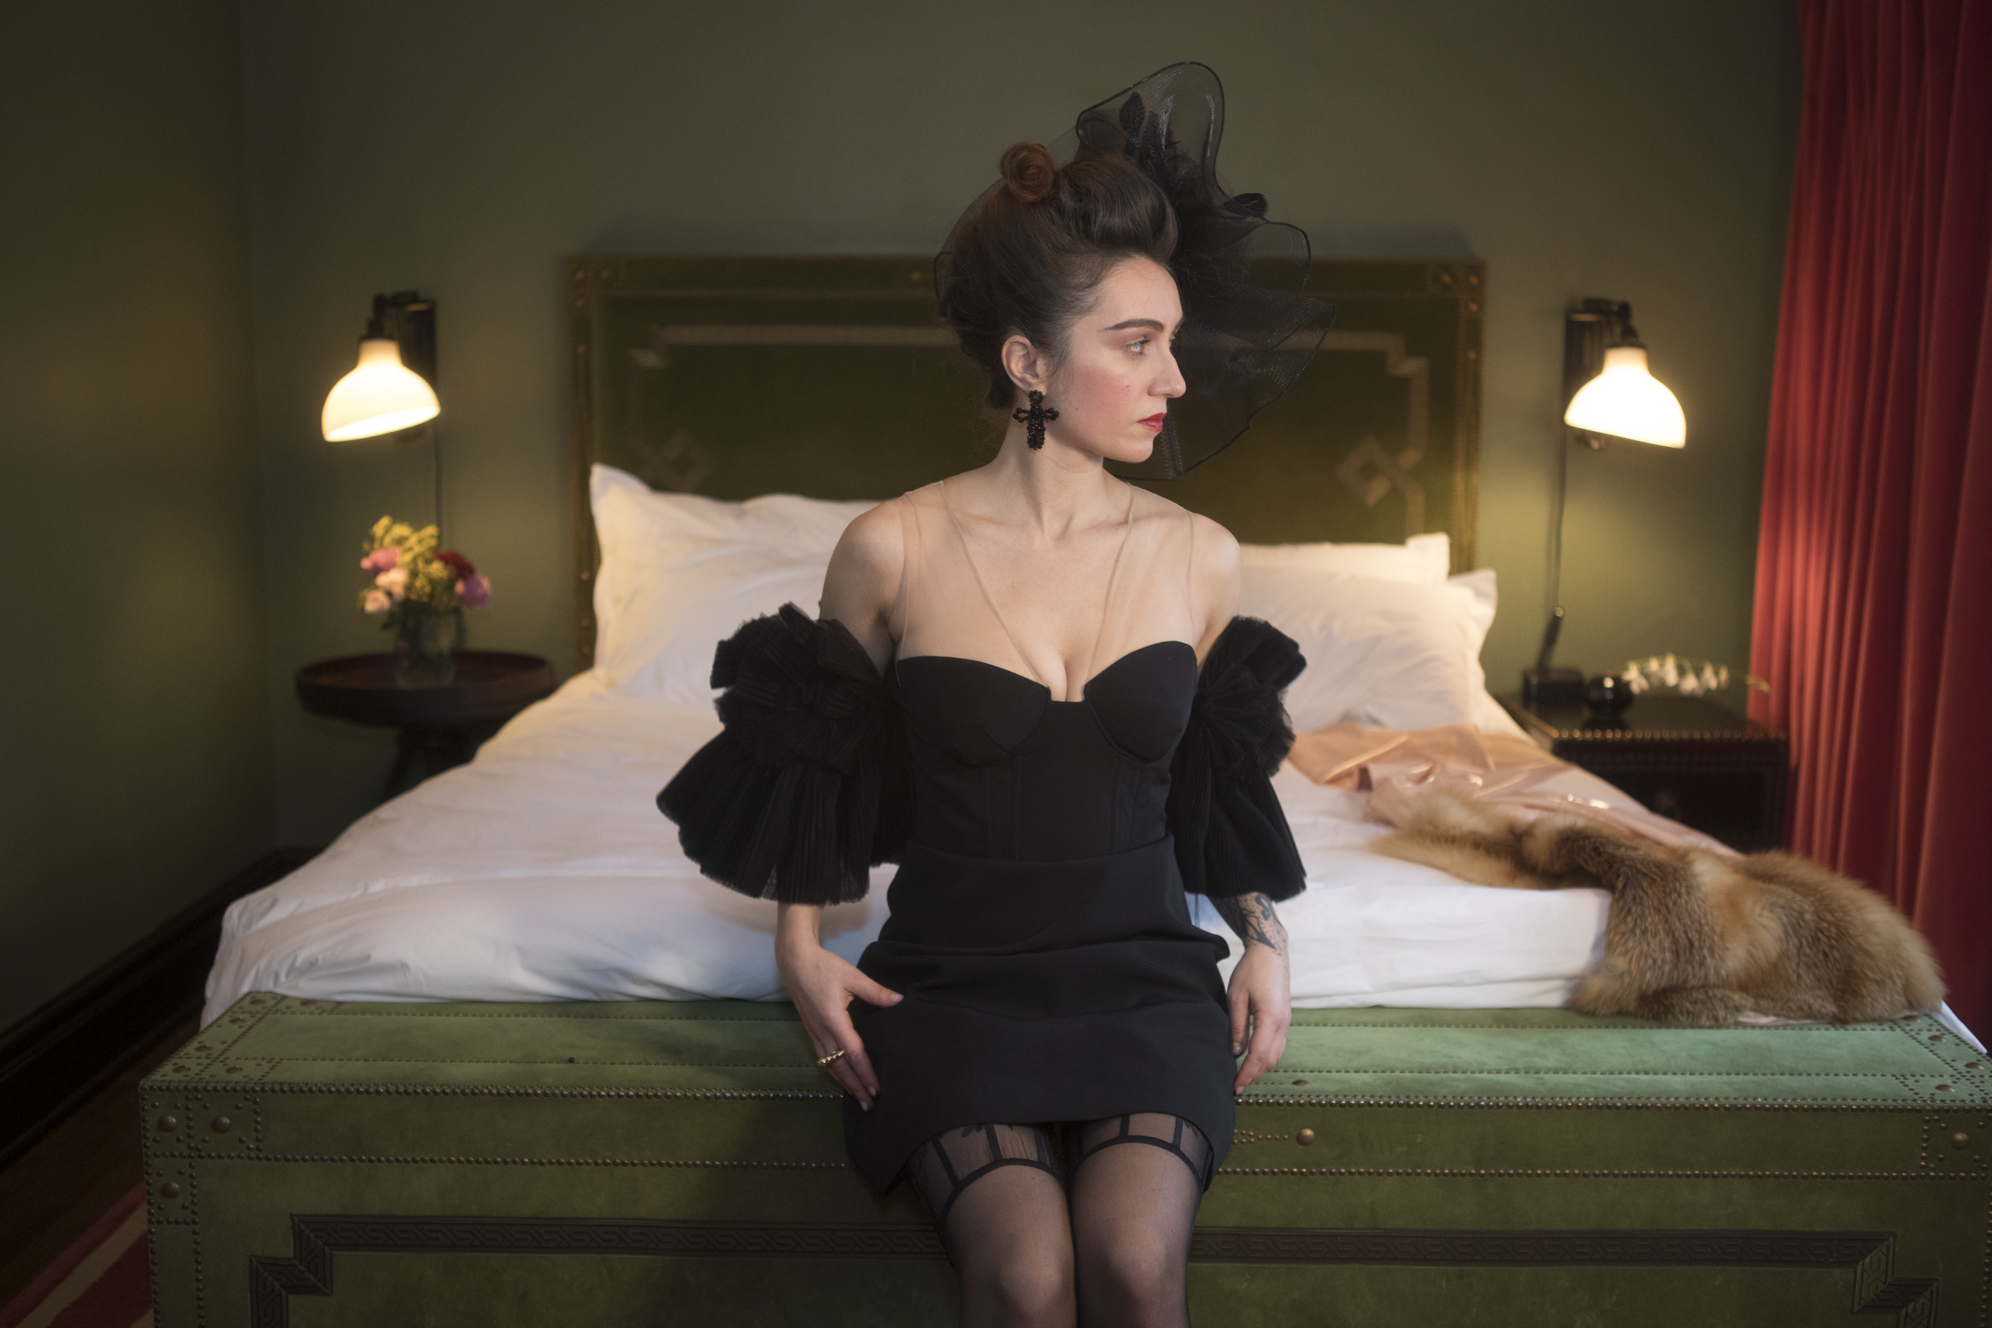 Mistress Verity. Photo by Alicia Wetherhill